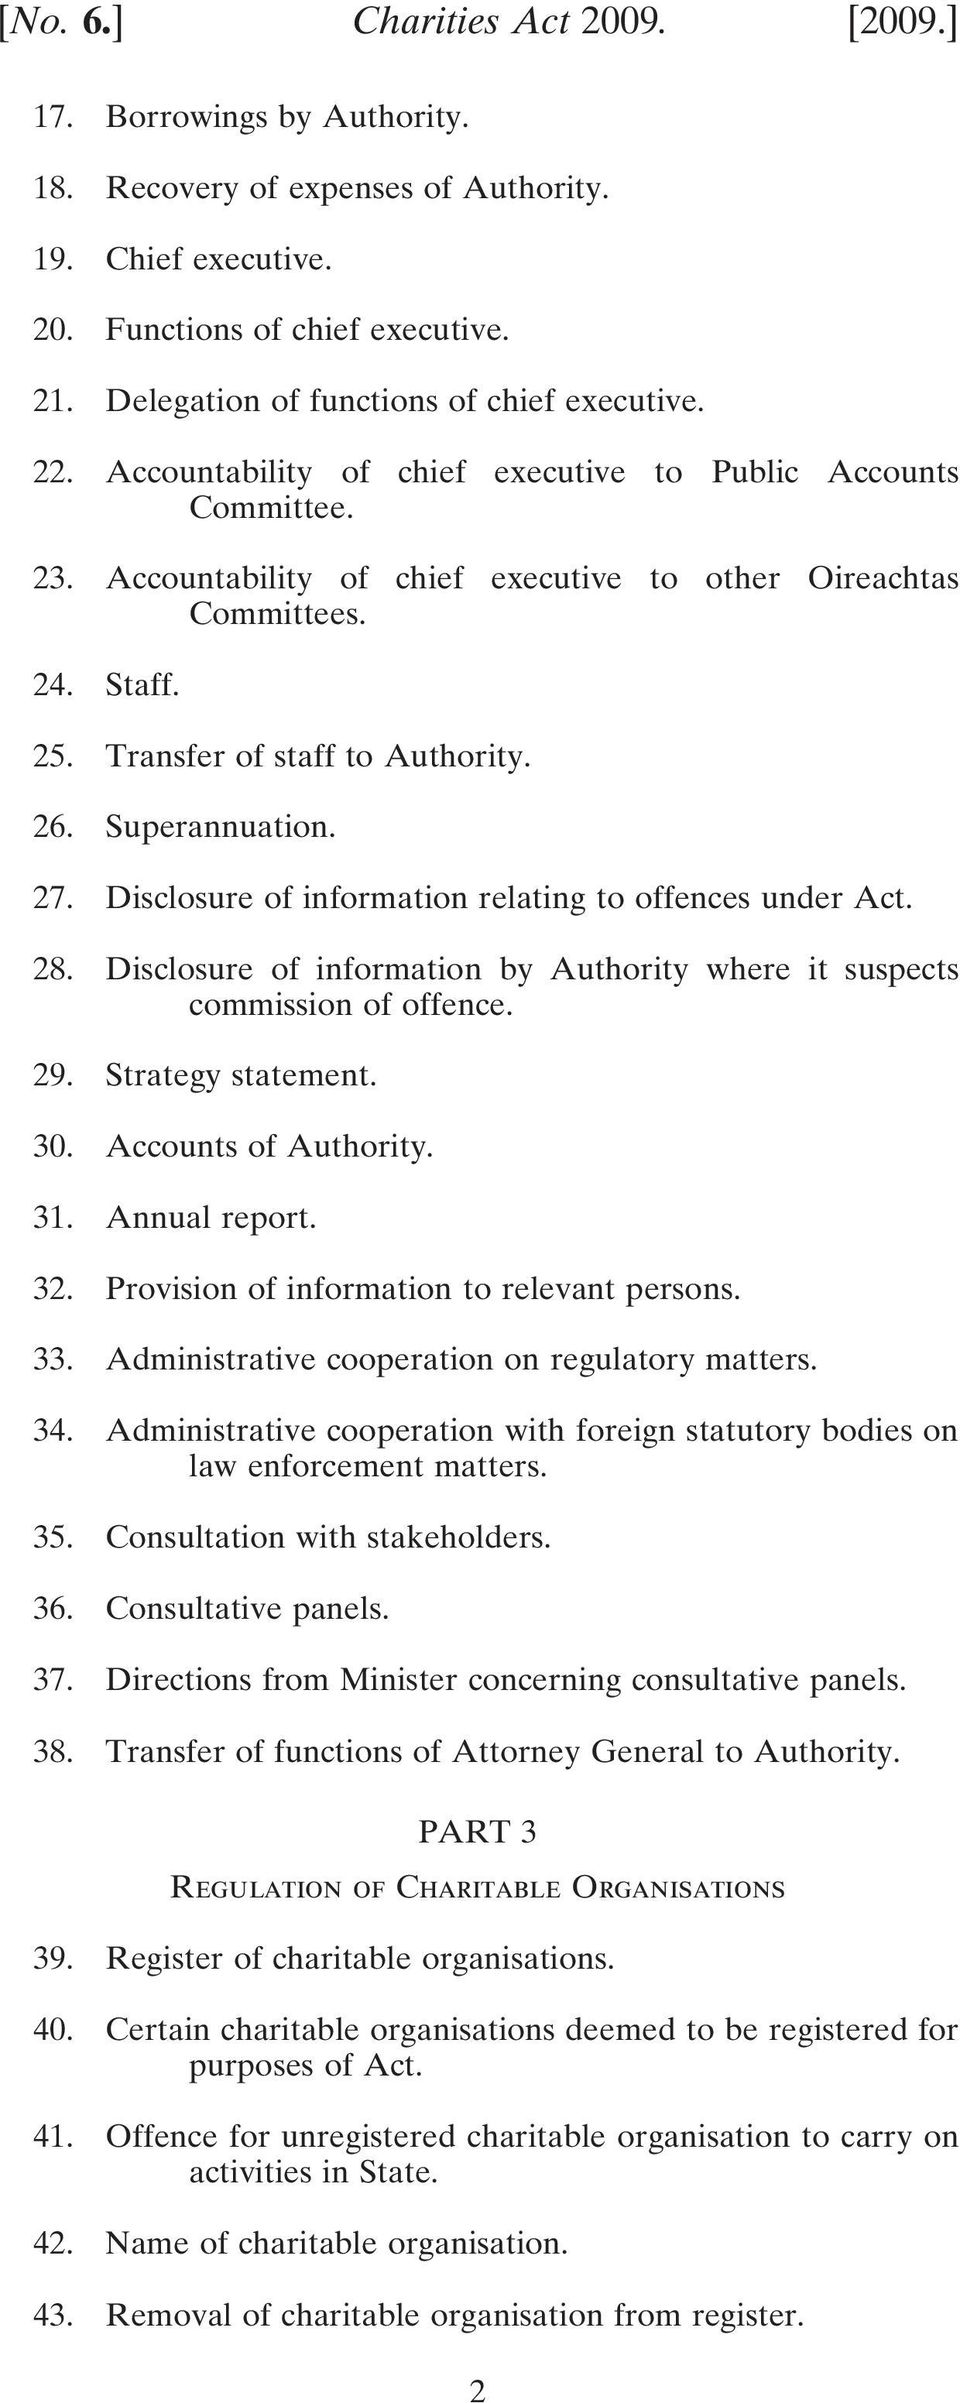 Transfer of staff to Authority. 26. Superannuation. 27. Disclosure of information relating to offences under Act. 28. Disclosure of information by Authority where it suspects commission of offence.